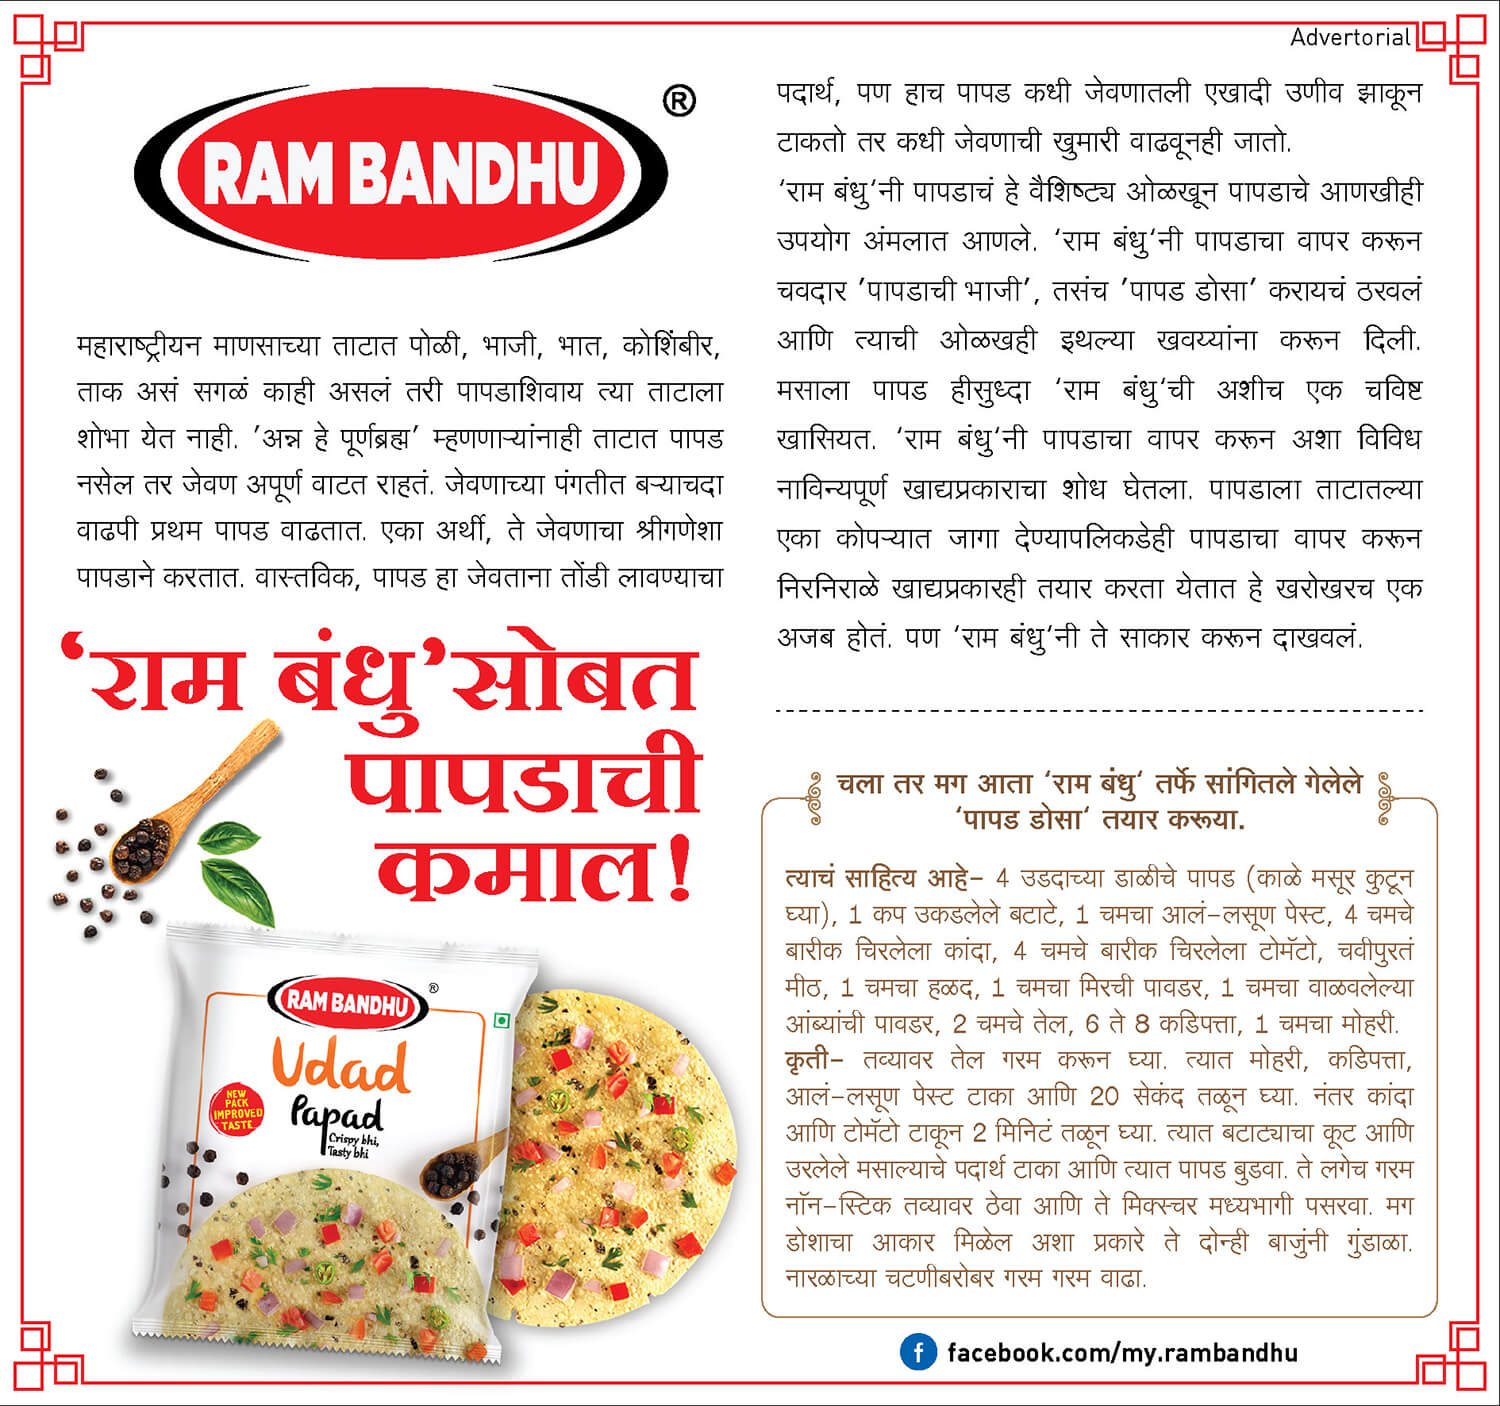 RB MARATHI Advertorial-16 x 15 cms-03